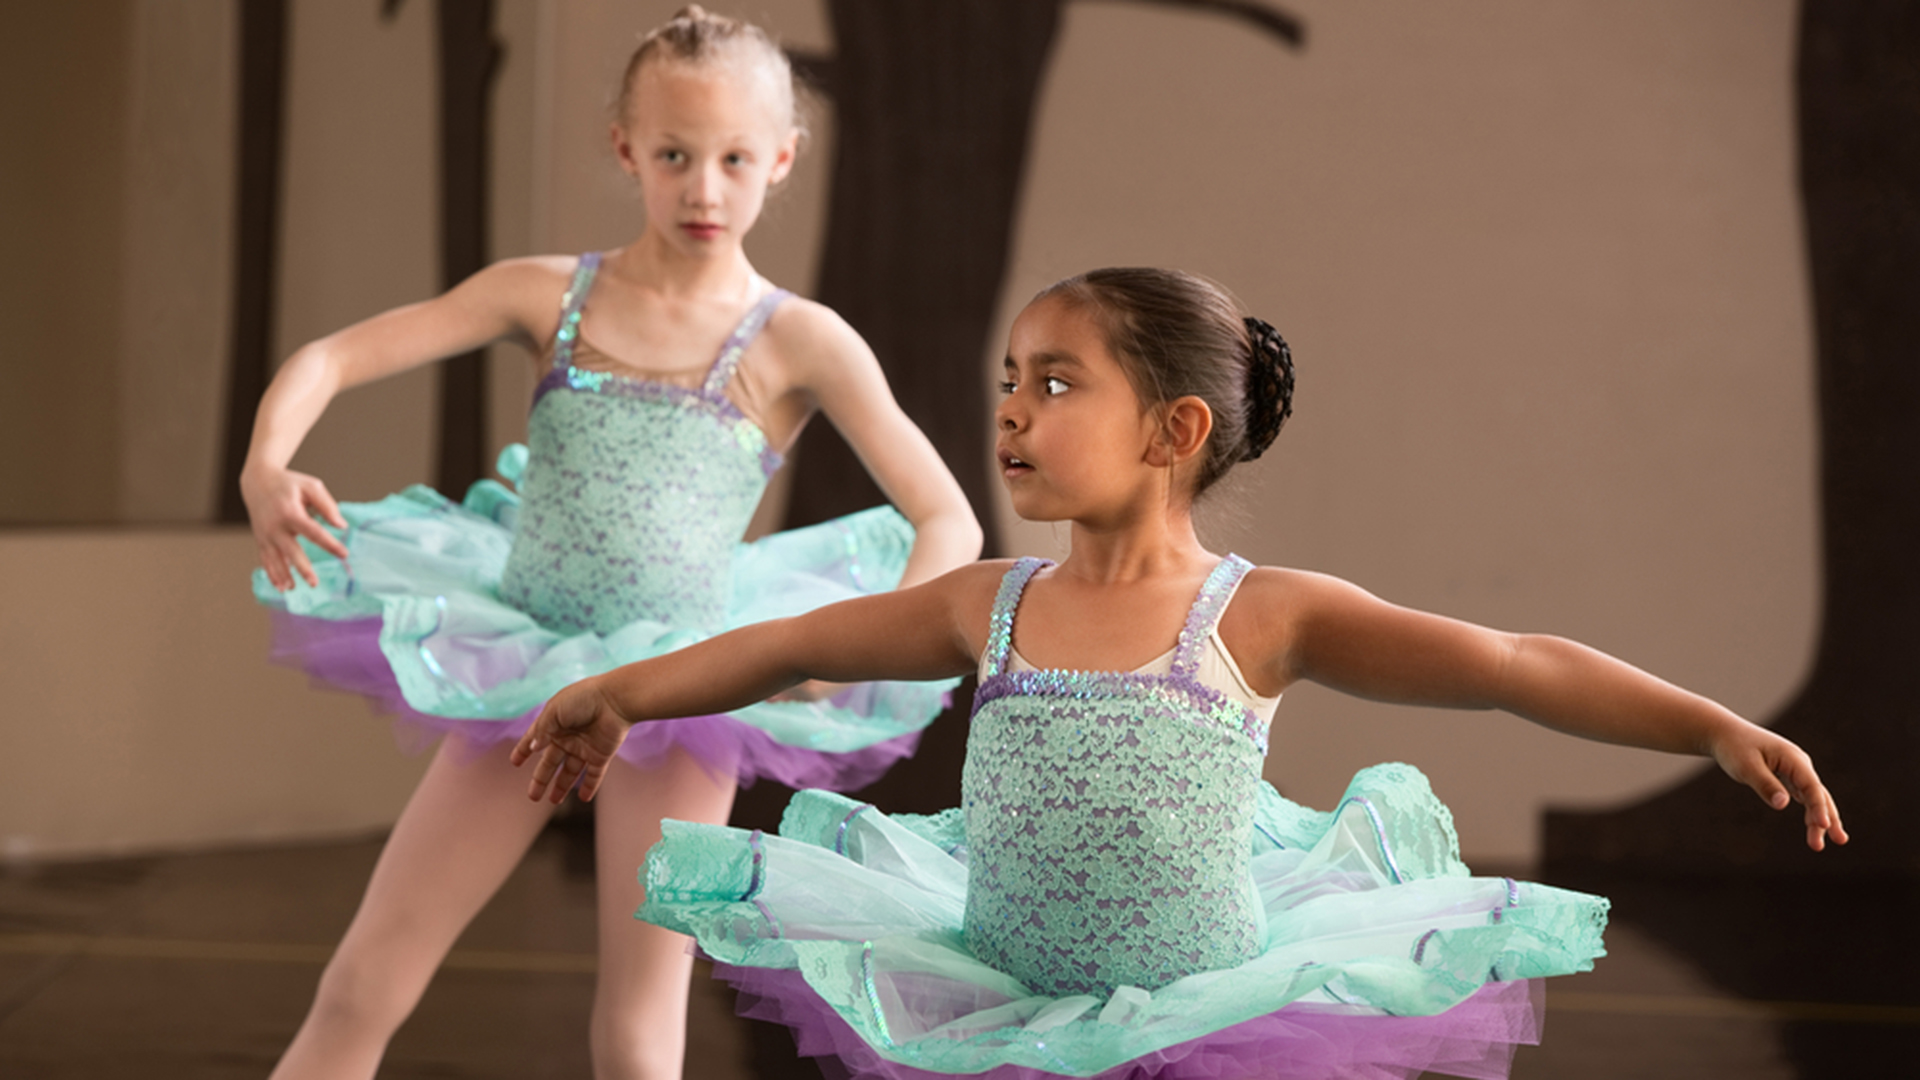 kids in dance classes may not get enough exercise  study